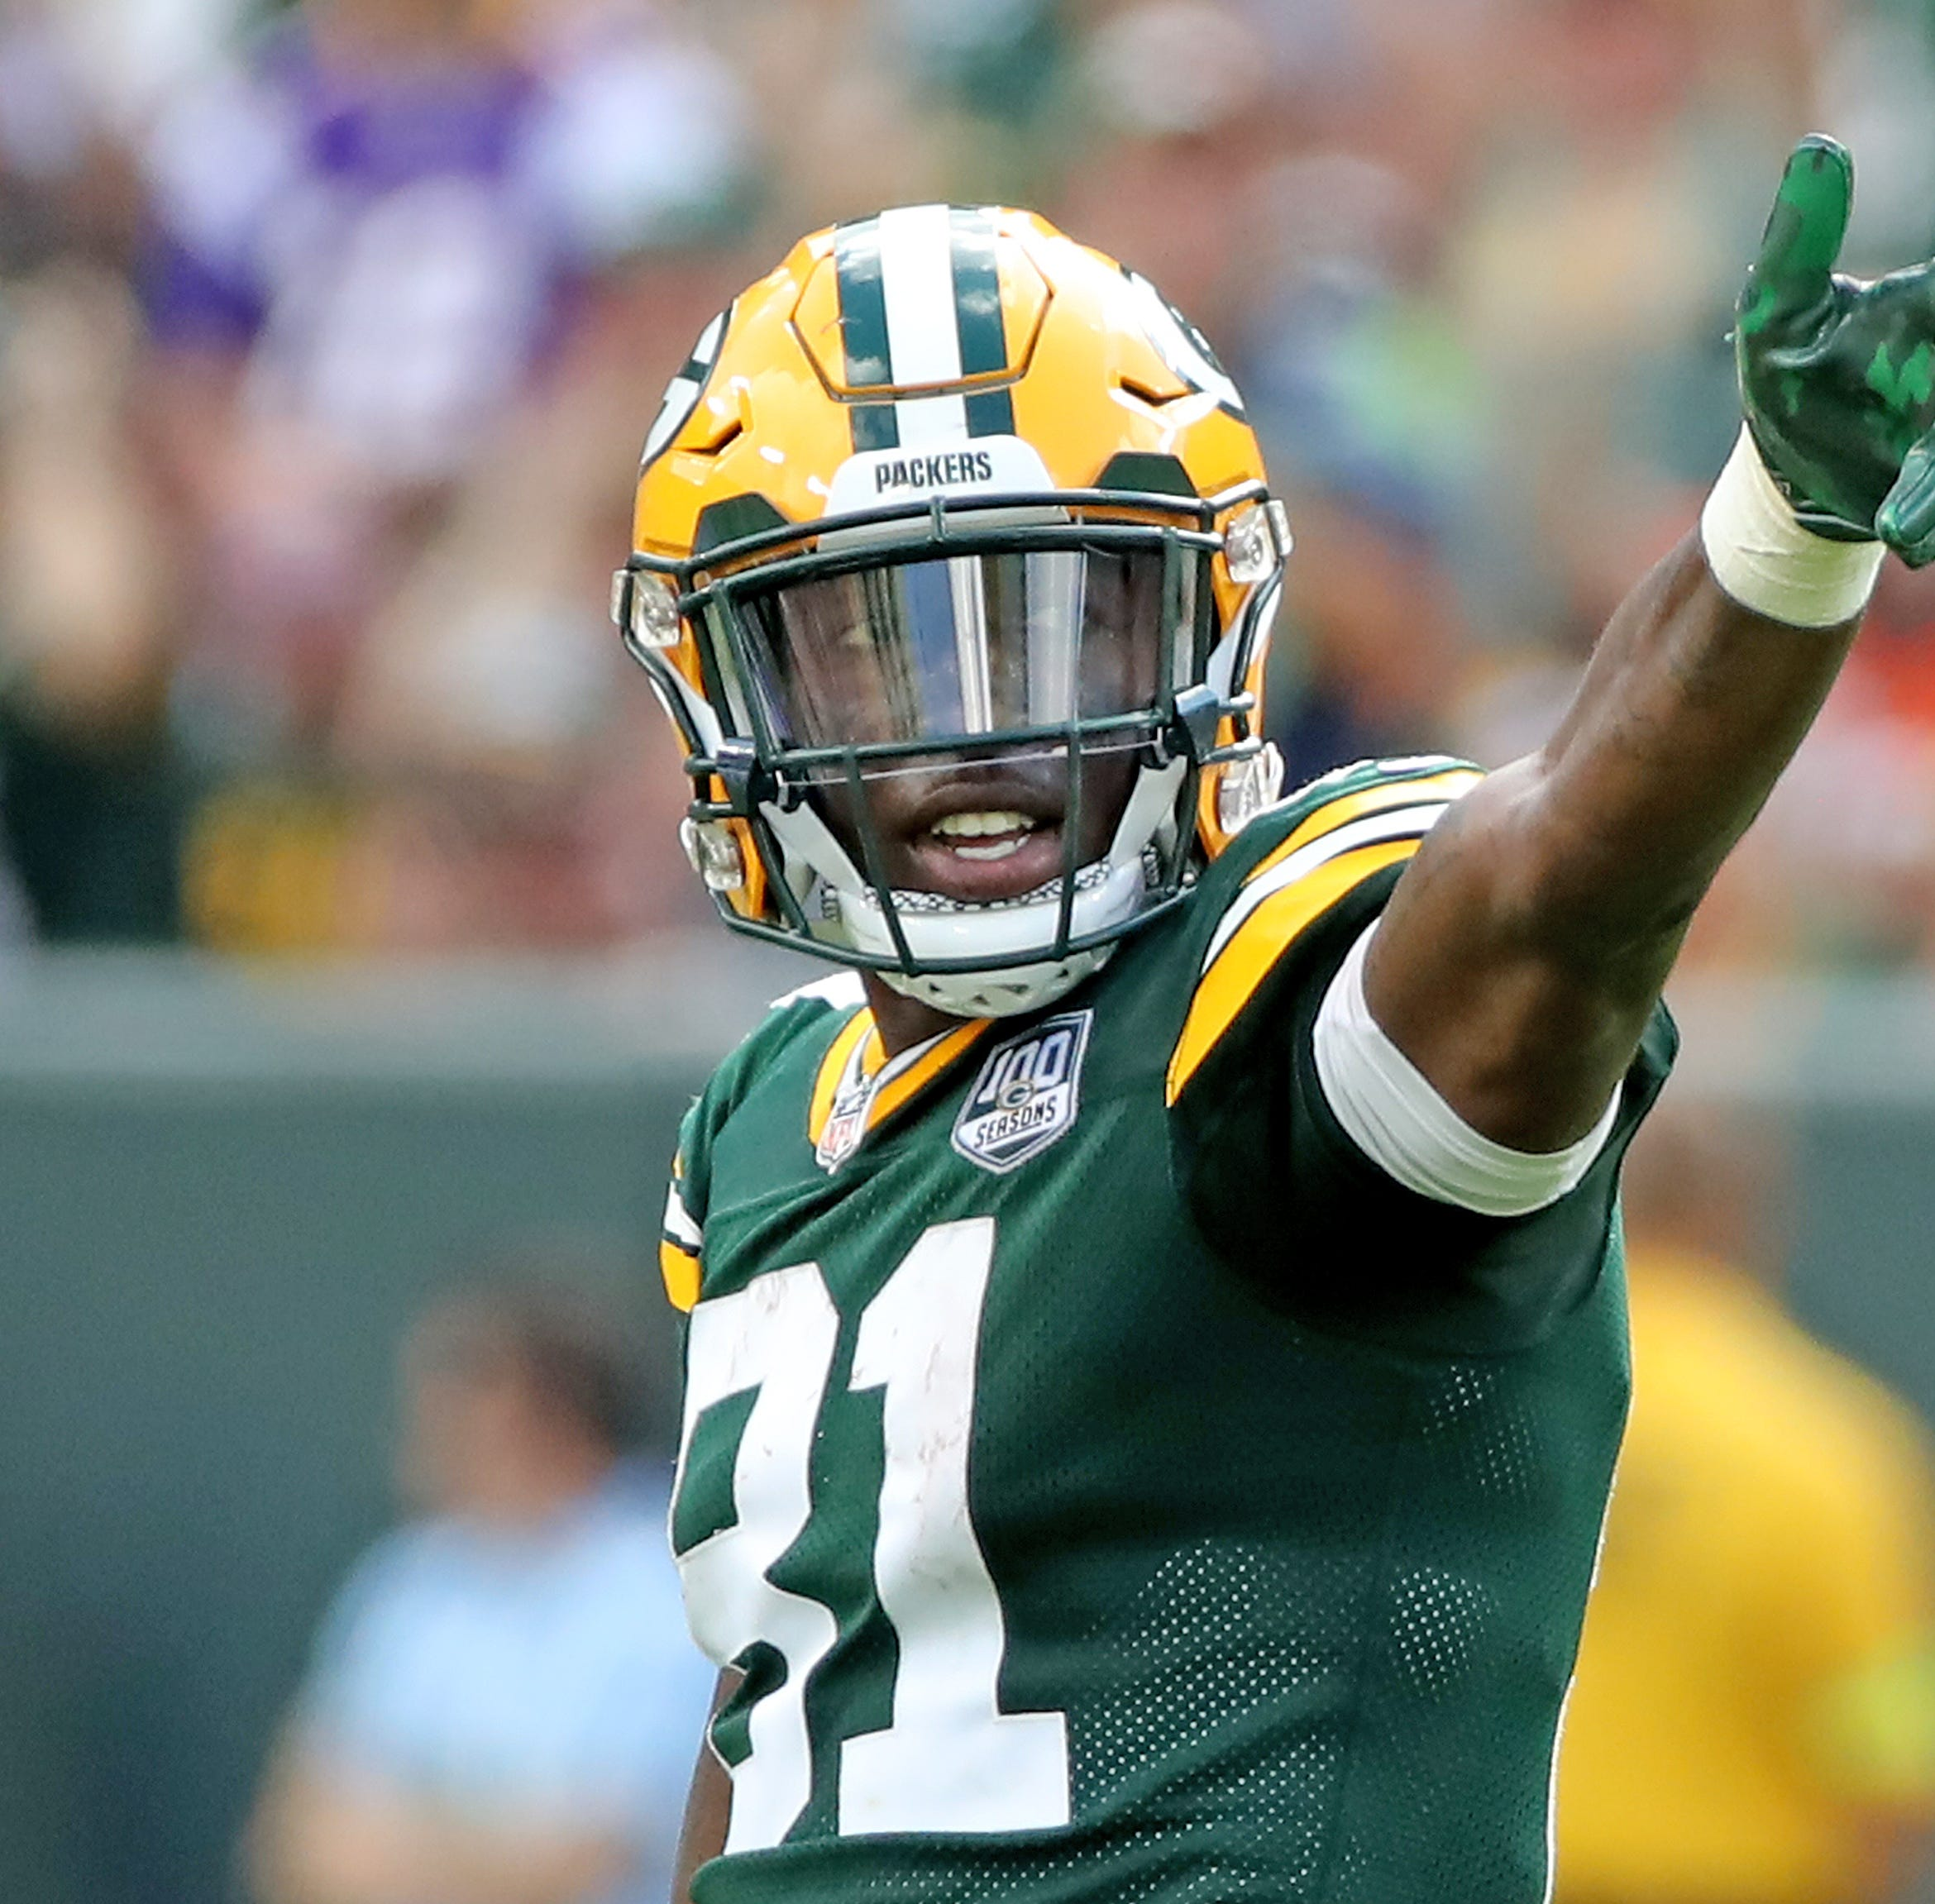 Receiver Geronimo Allison determined to 'leave my mark' with Packers